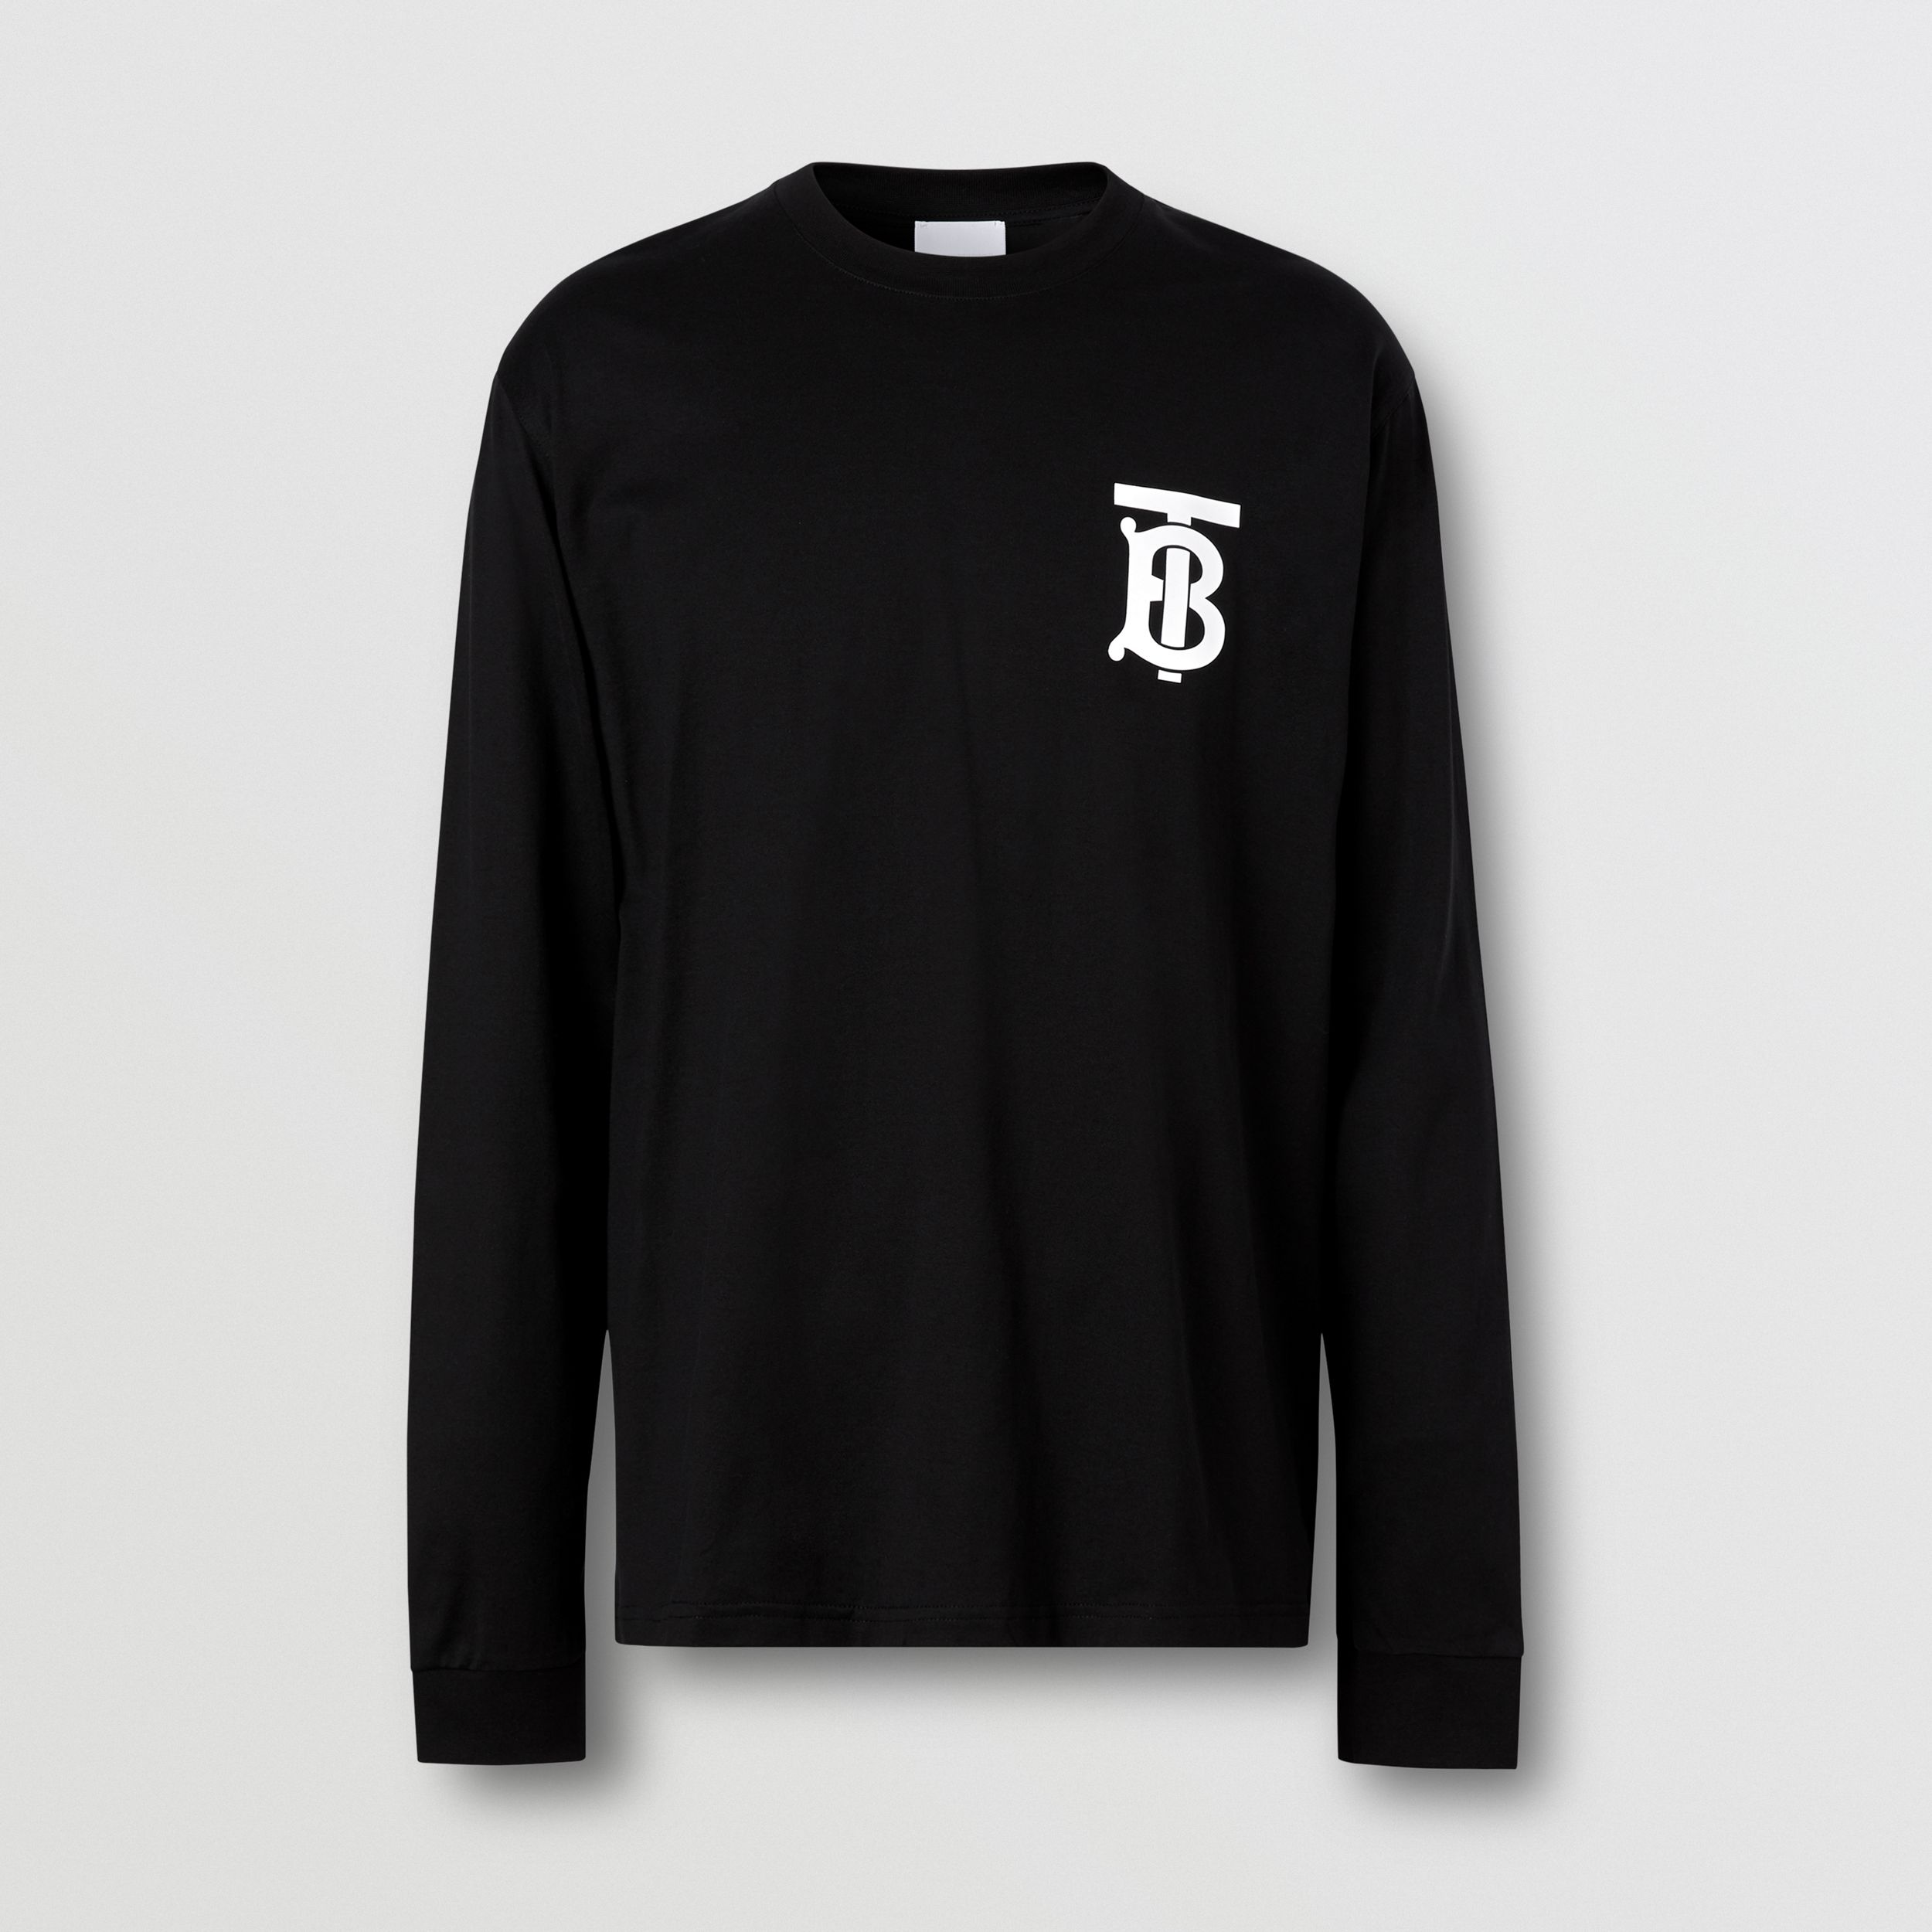 Long-sleeve Monogram Motif Cotton Top in Black - Men | Burberry Canada - 4